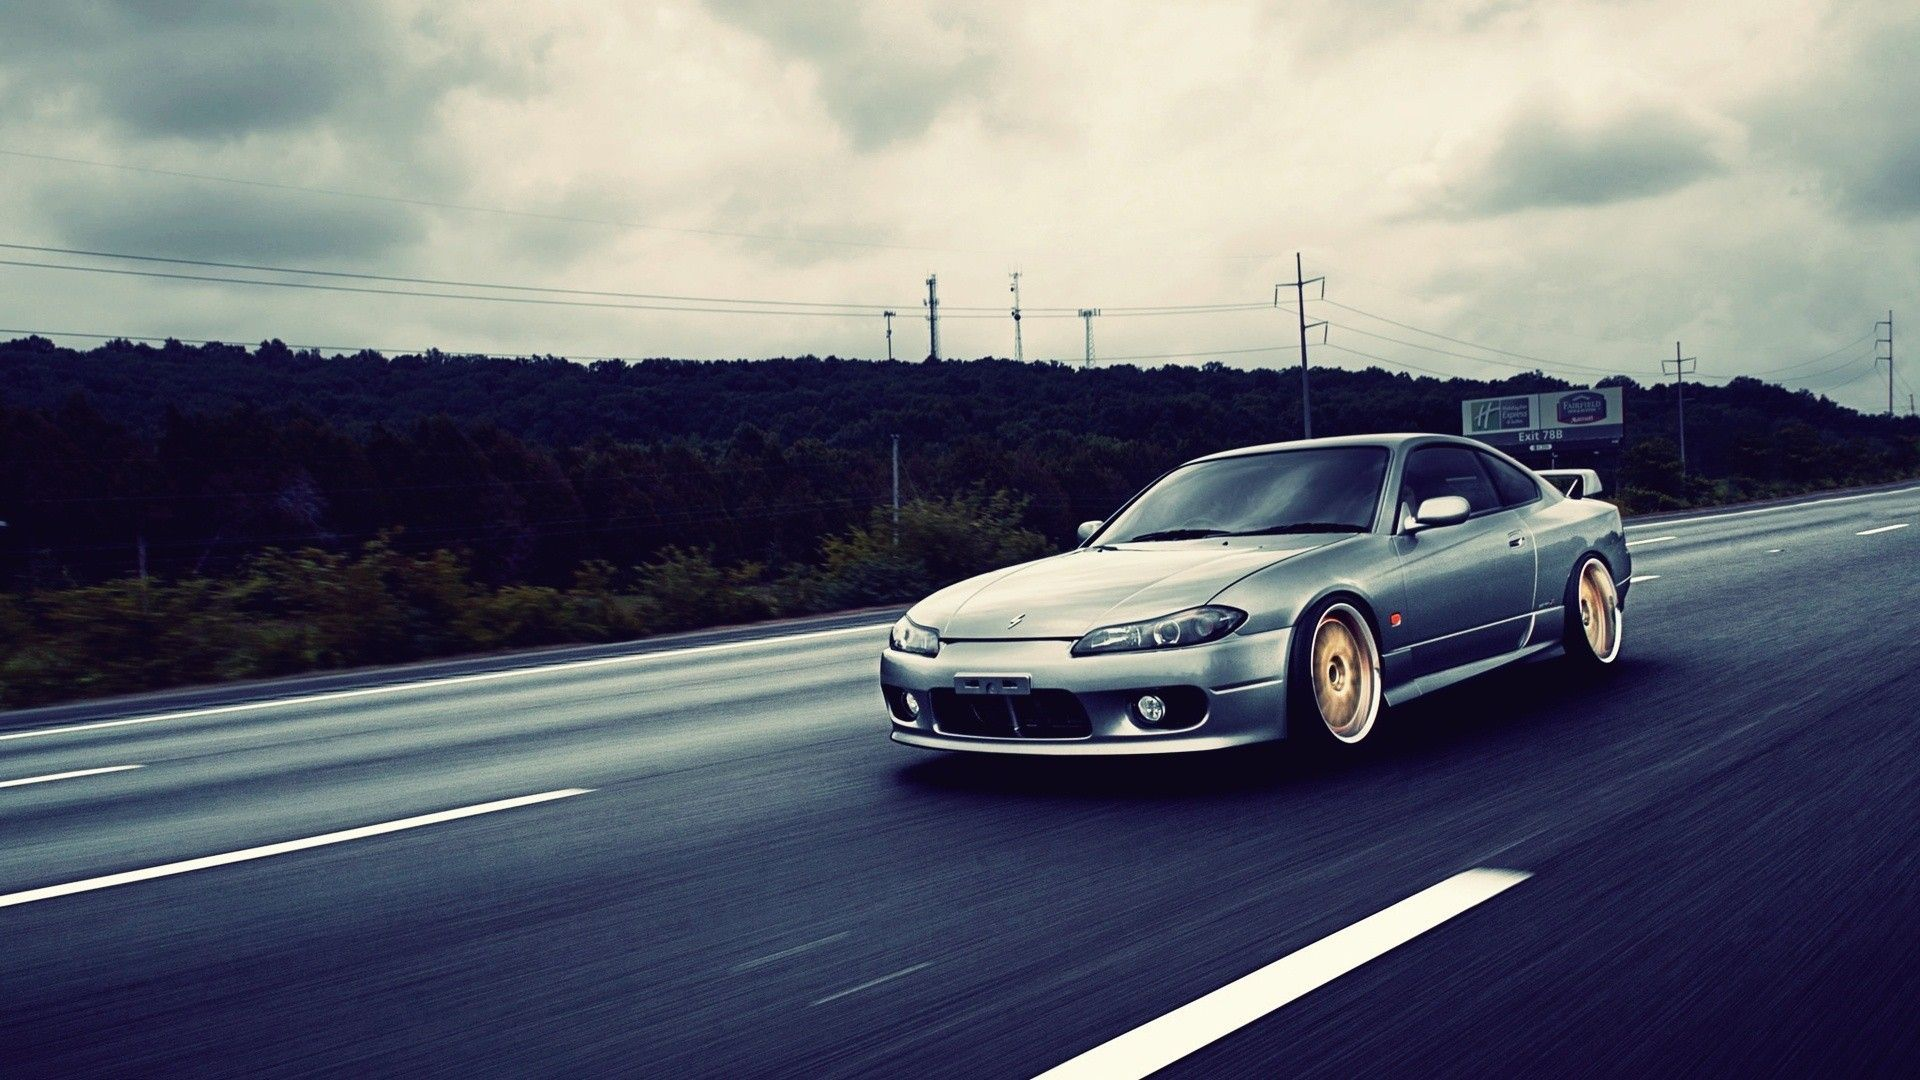 Nissan S15 Wallpapers Top Free Nissan S15 Backgrounds Wallpaperaccess